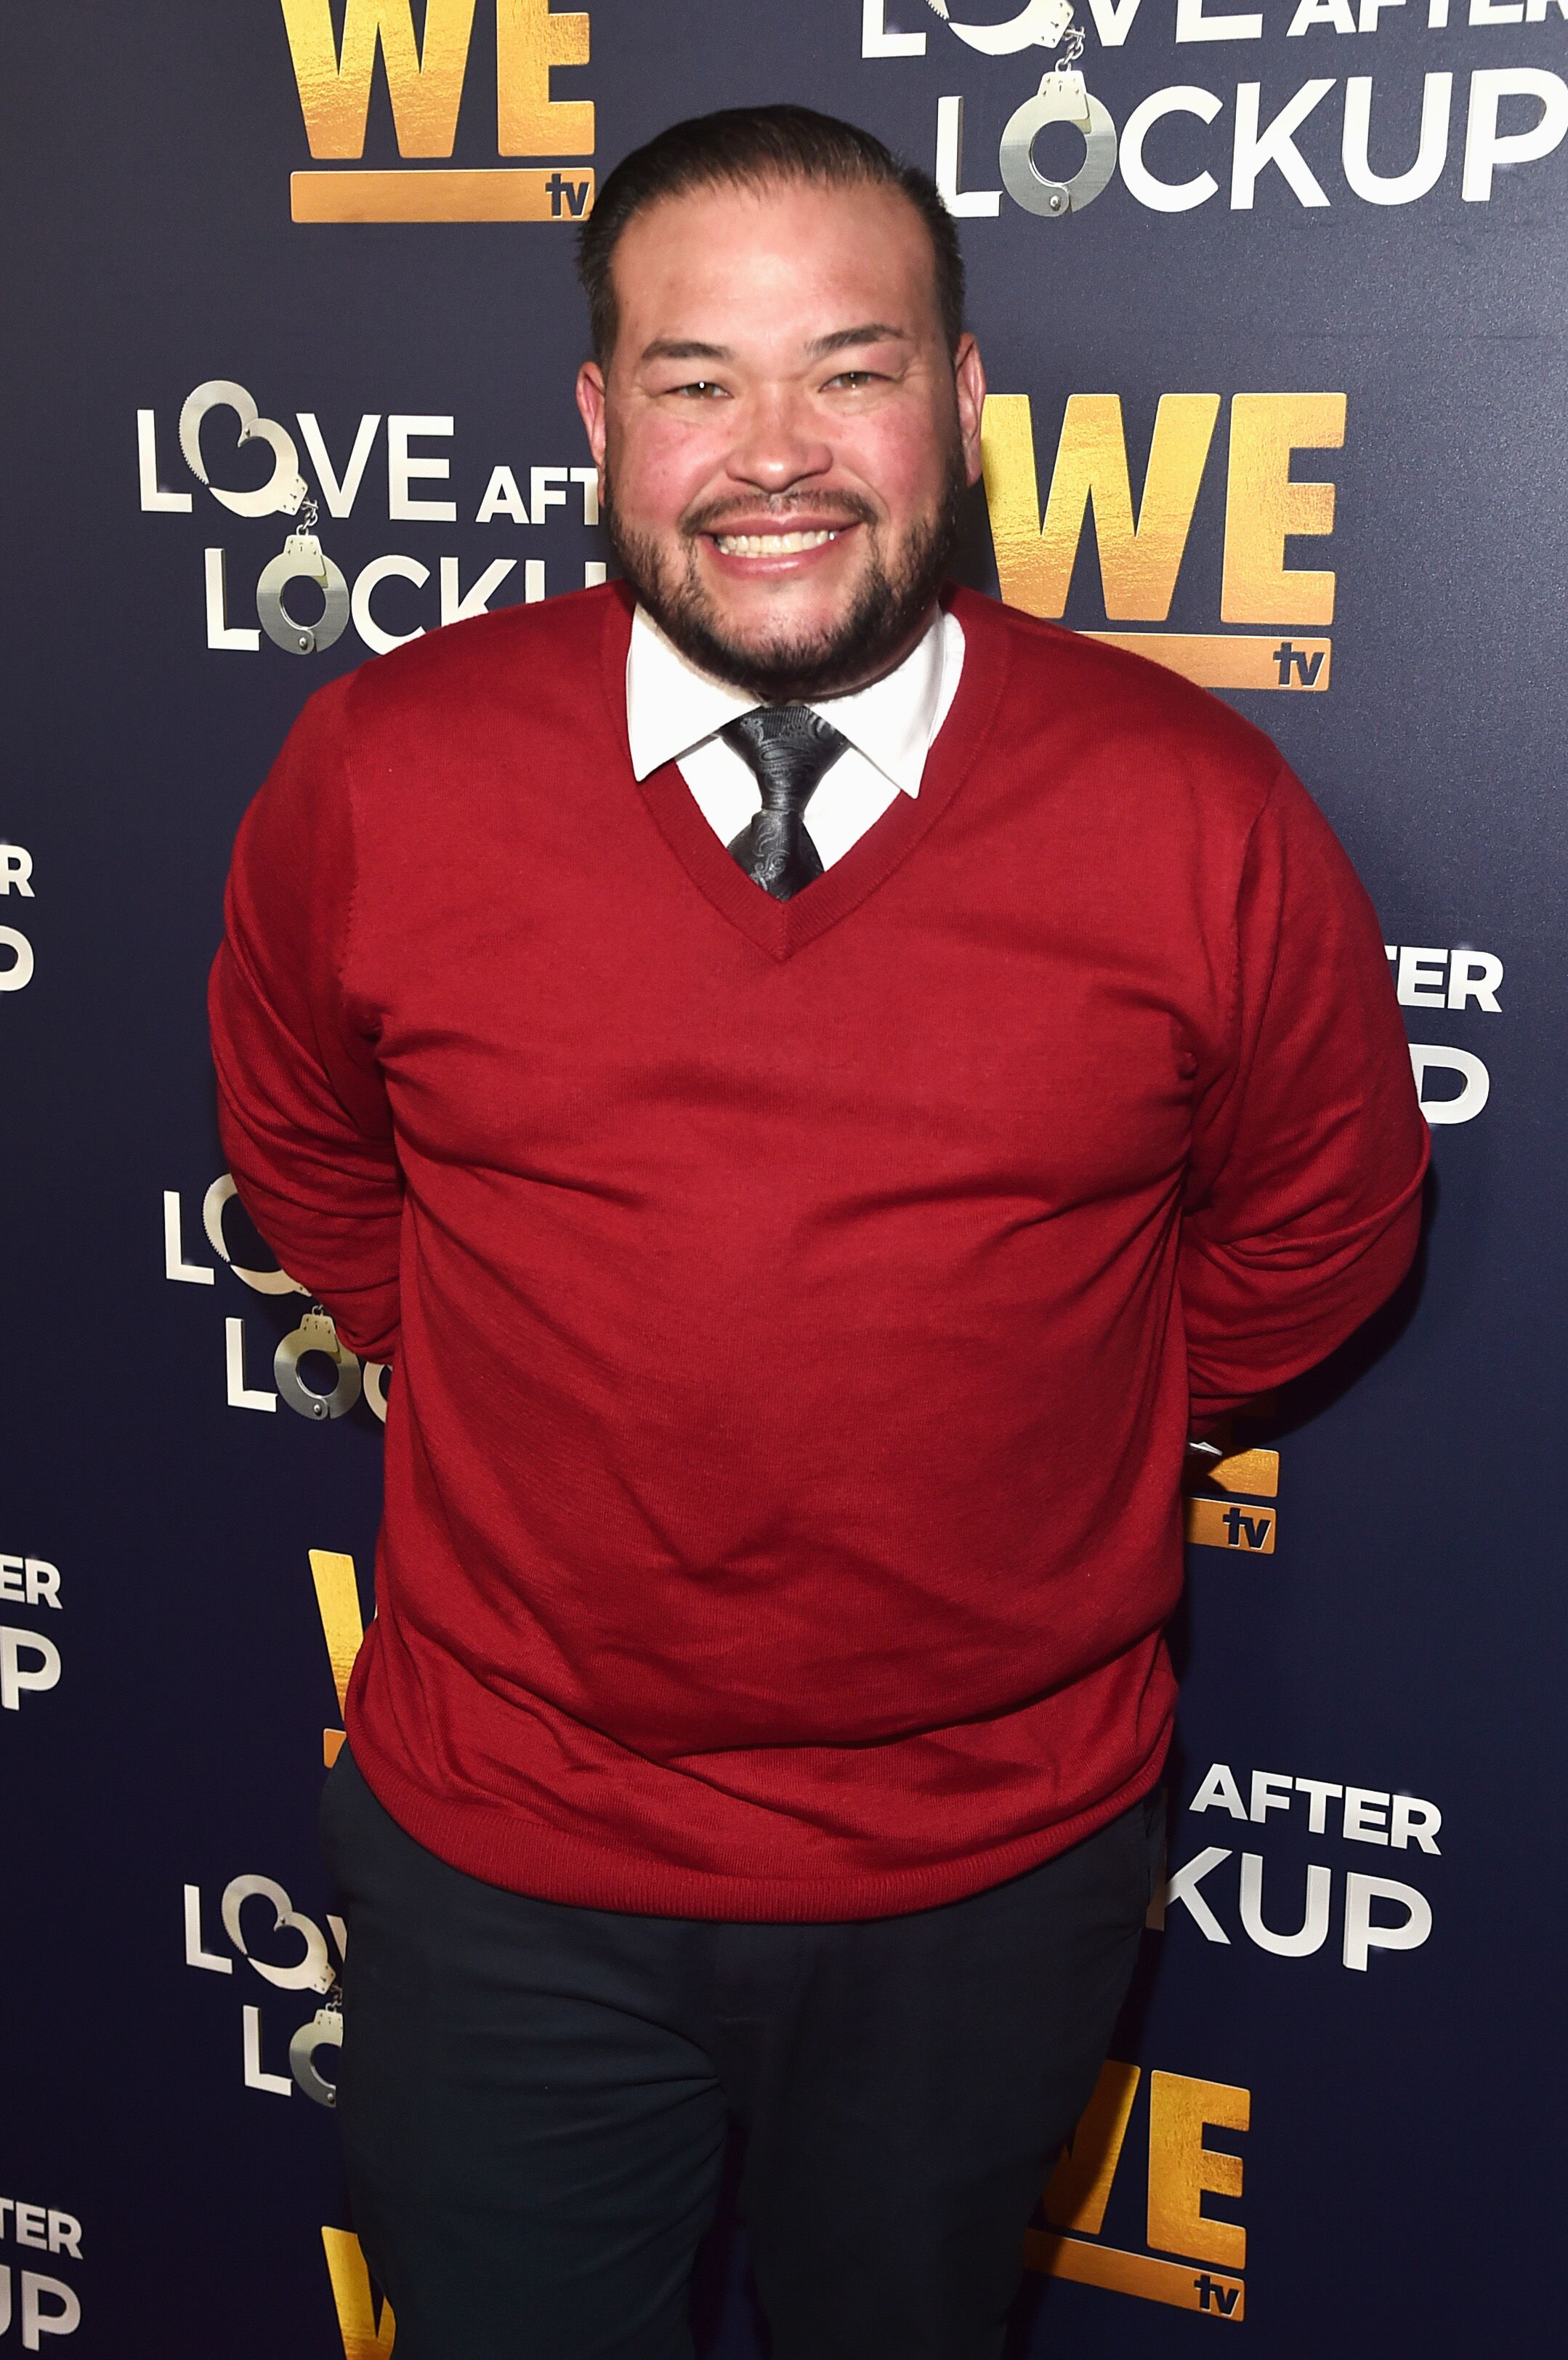 Jon Gosselin at WE tv on December 11, 2018, in Beverly Hills, California | Photo: Alberto E. Rodriguez/Getty Images